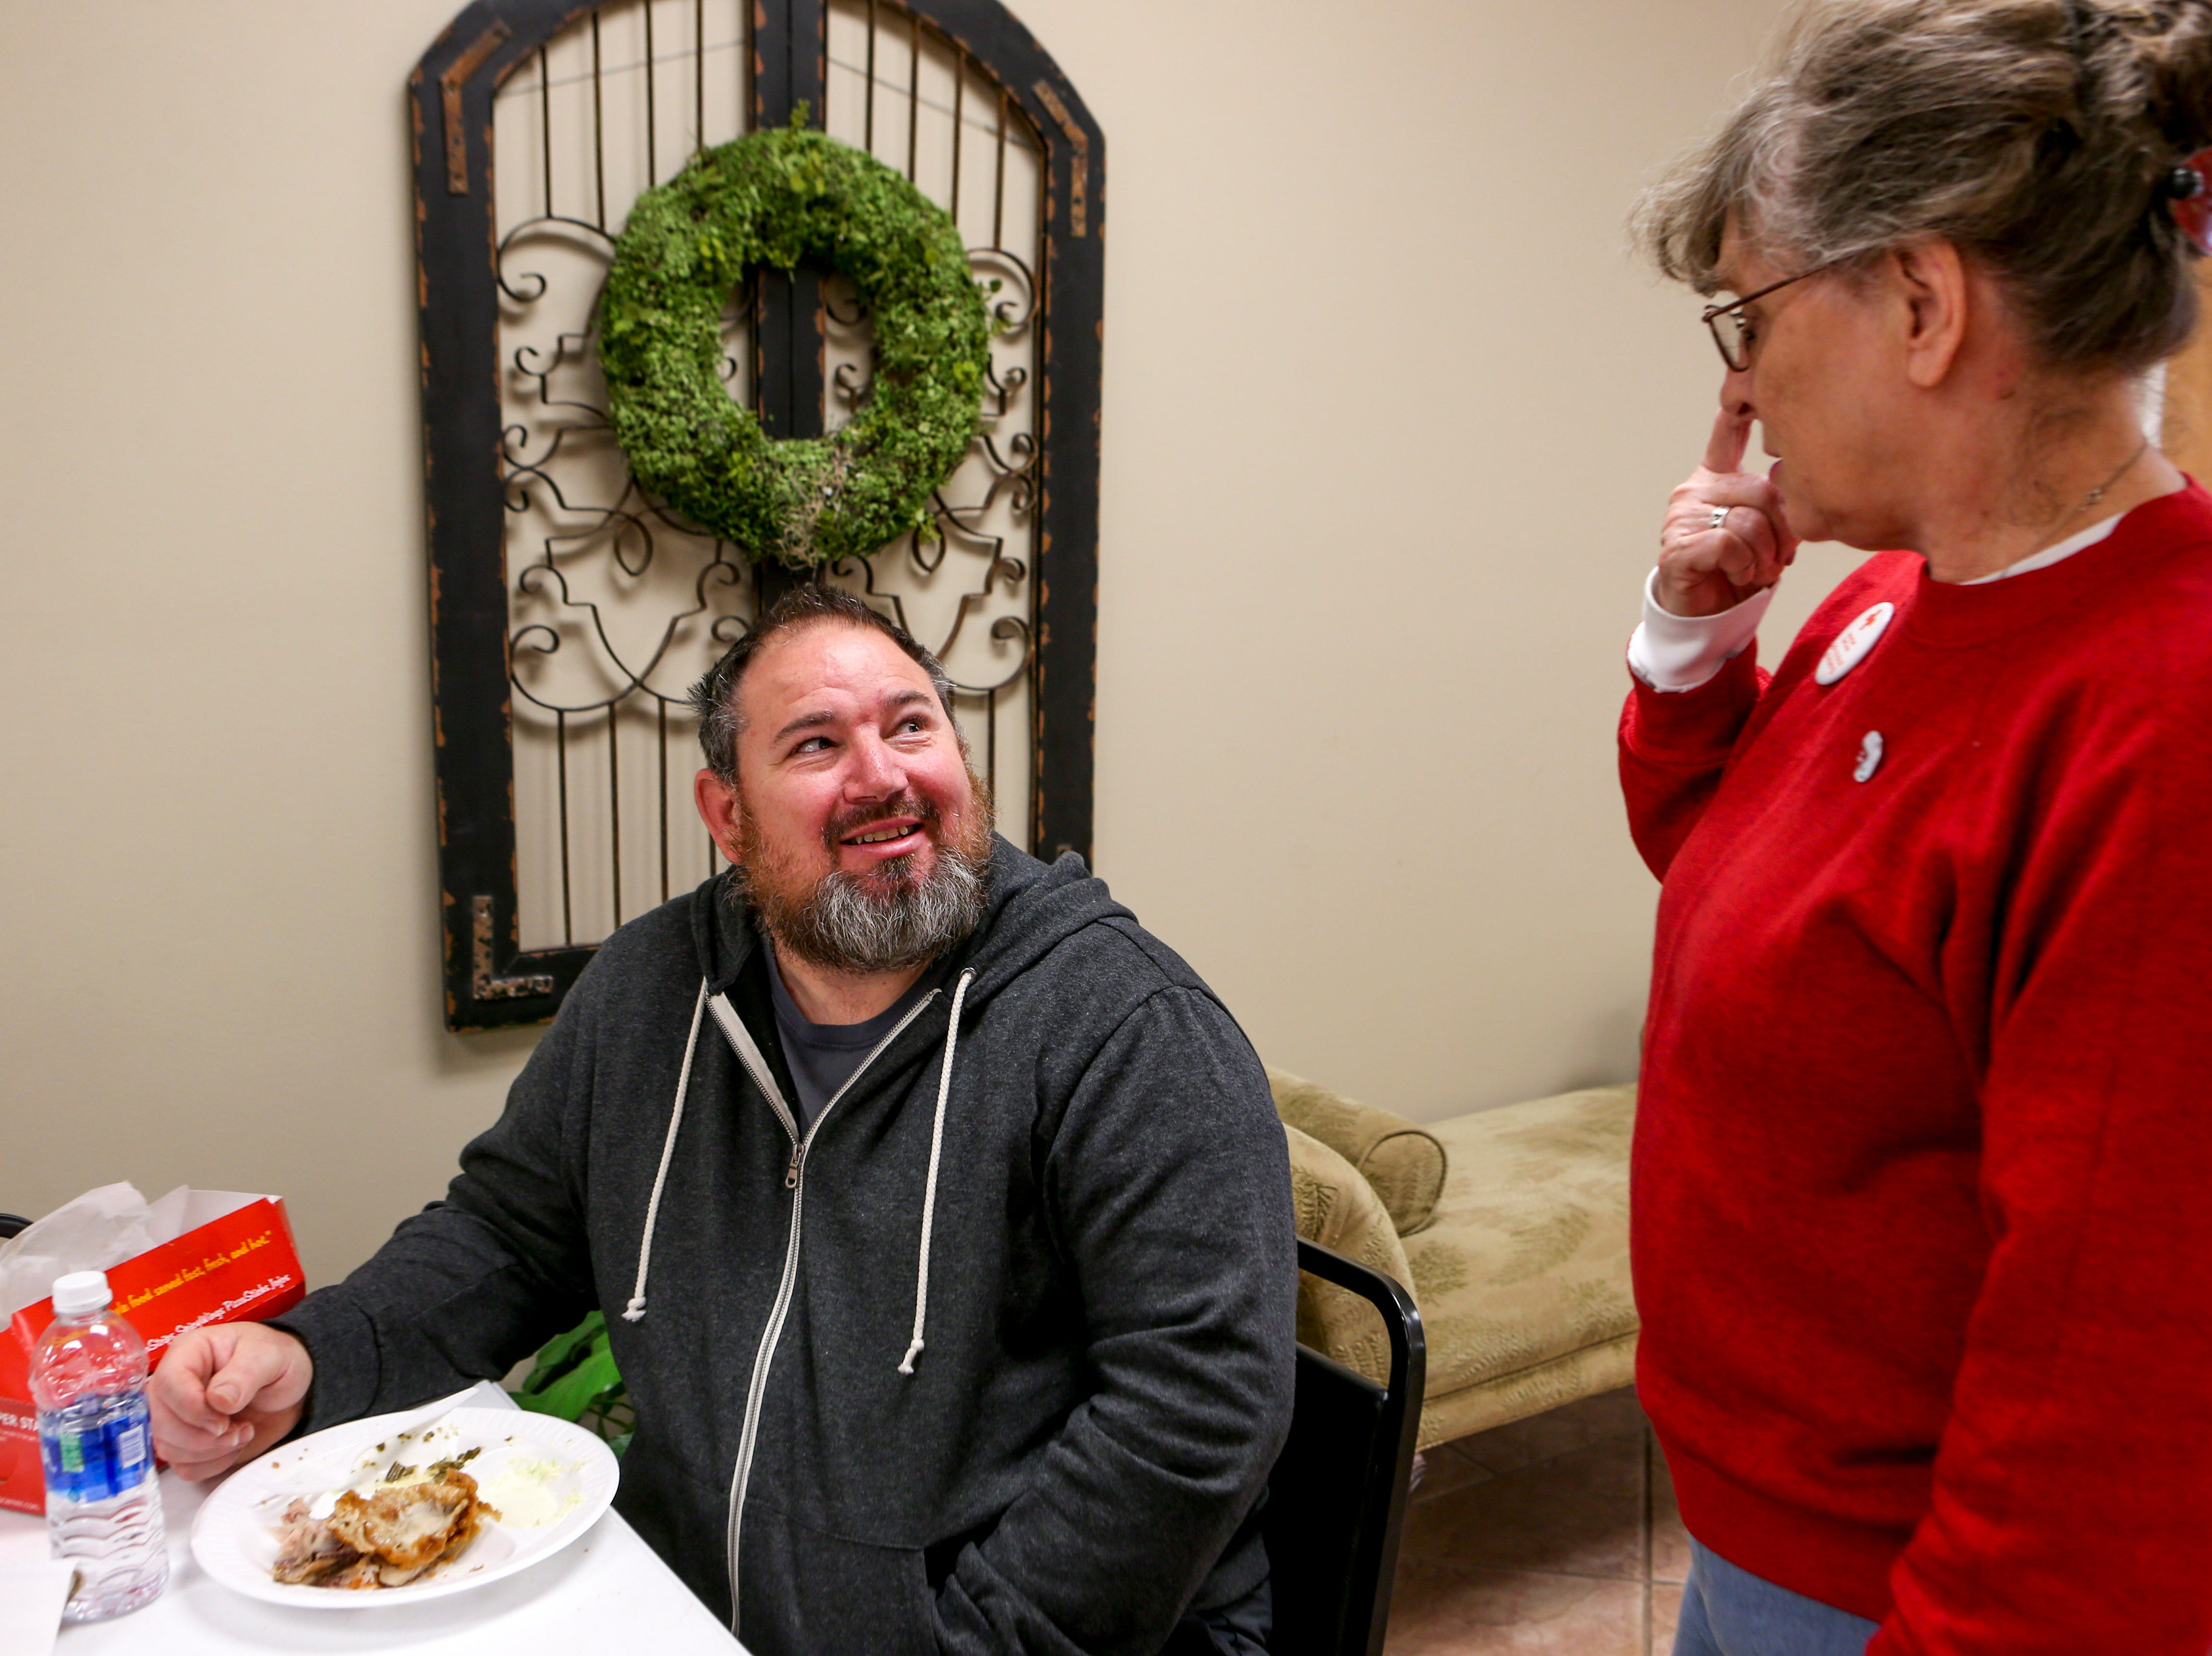 Jackie, right, a volunteer for The American Red Cross, asks Frank Taylor, a Savannah resident that lost everything after flood waters overtook the home he just finished modeling, what were his glasses prescriptions so they can get him a new pair after Taylor mentioned he had lost his in the water at Savannah Church of Christ, in Savannah, Tenn., on Monday, Feb. 25, 2019.